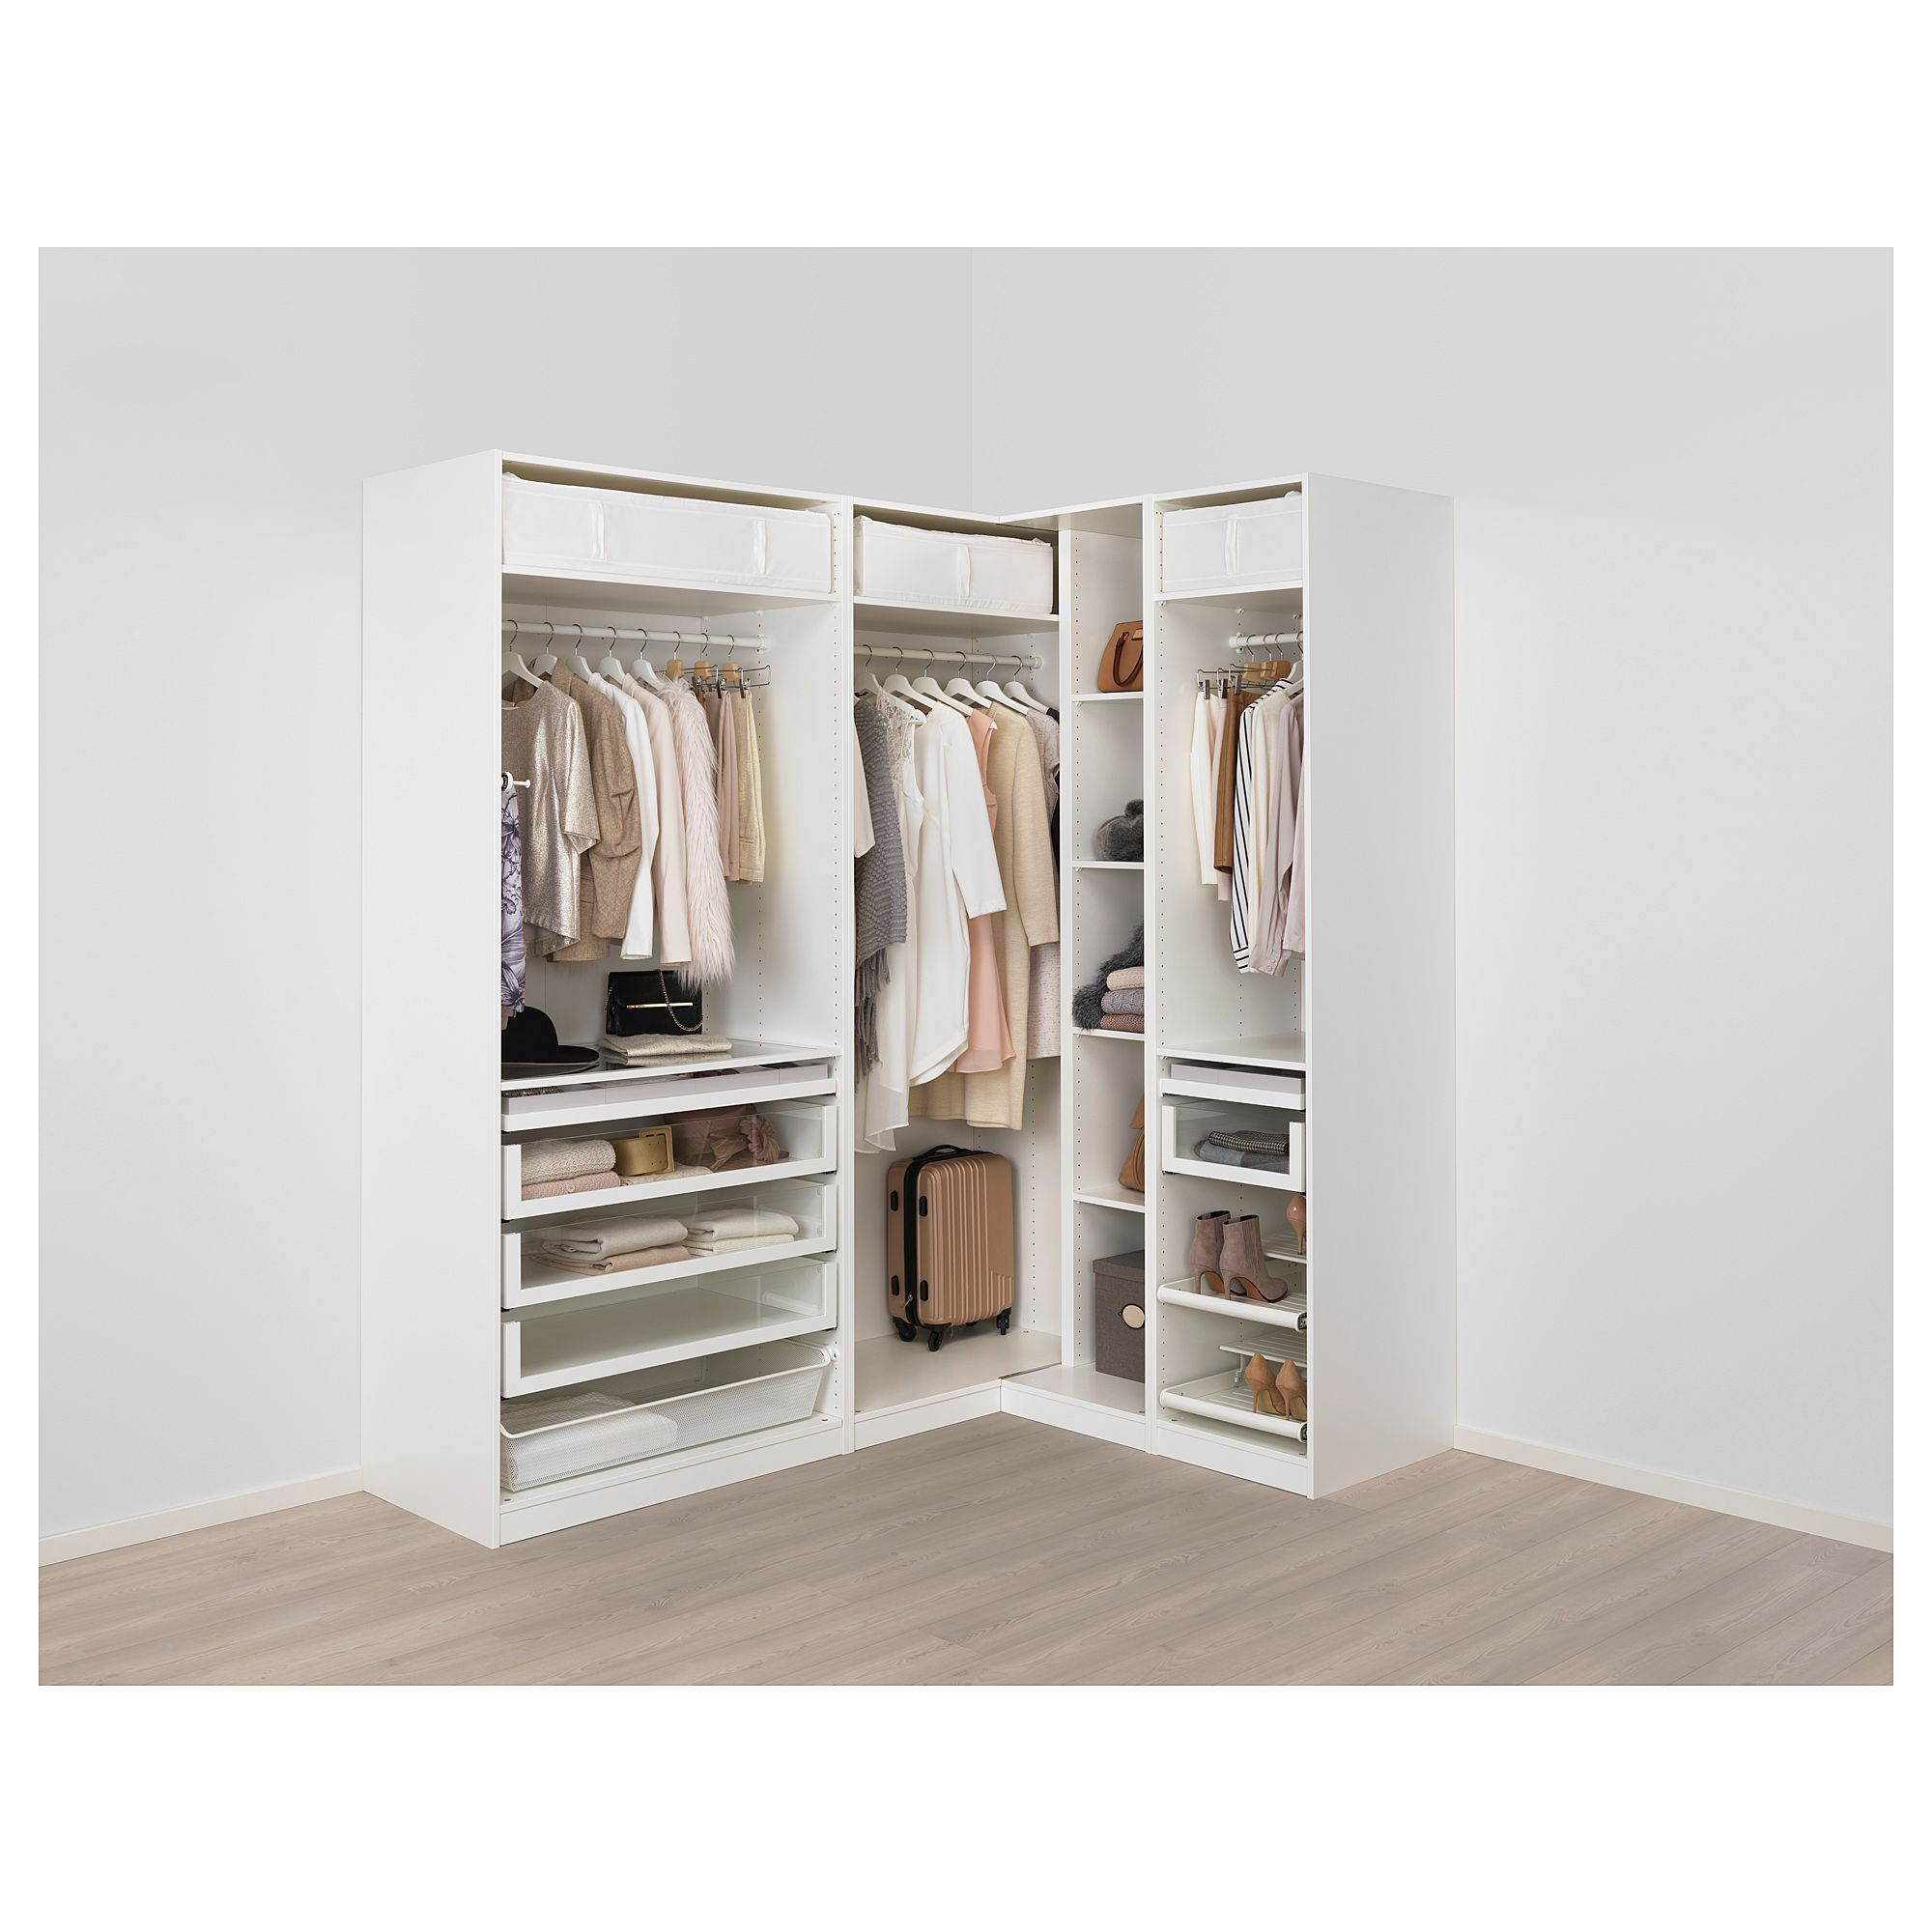 Ikea Us Furniture And Home Furnishings Furnishings Furniture Home Ikea Paxgarderobe In 2020 Eckkleiderschrank Ikea Pax Pax Eckschrank